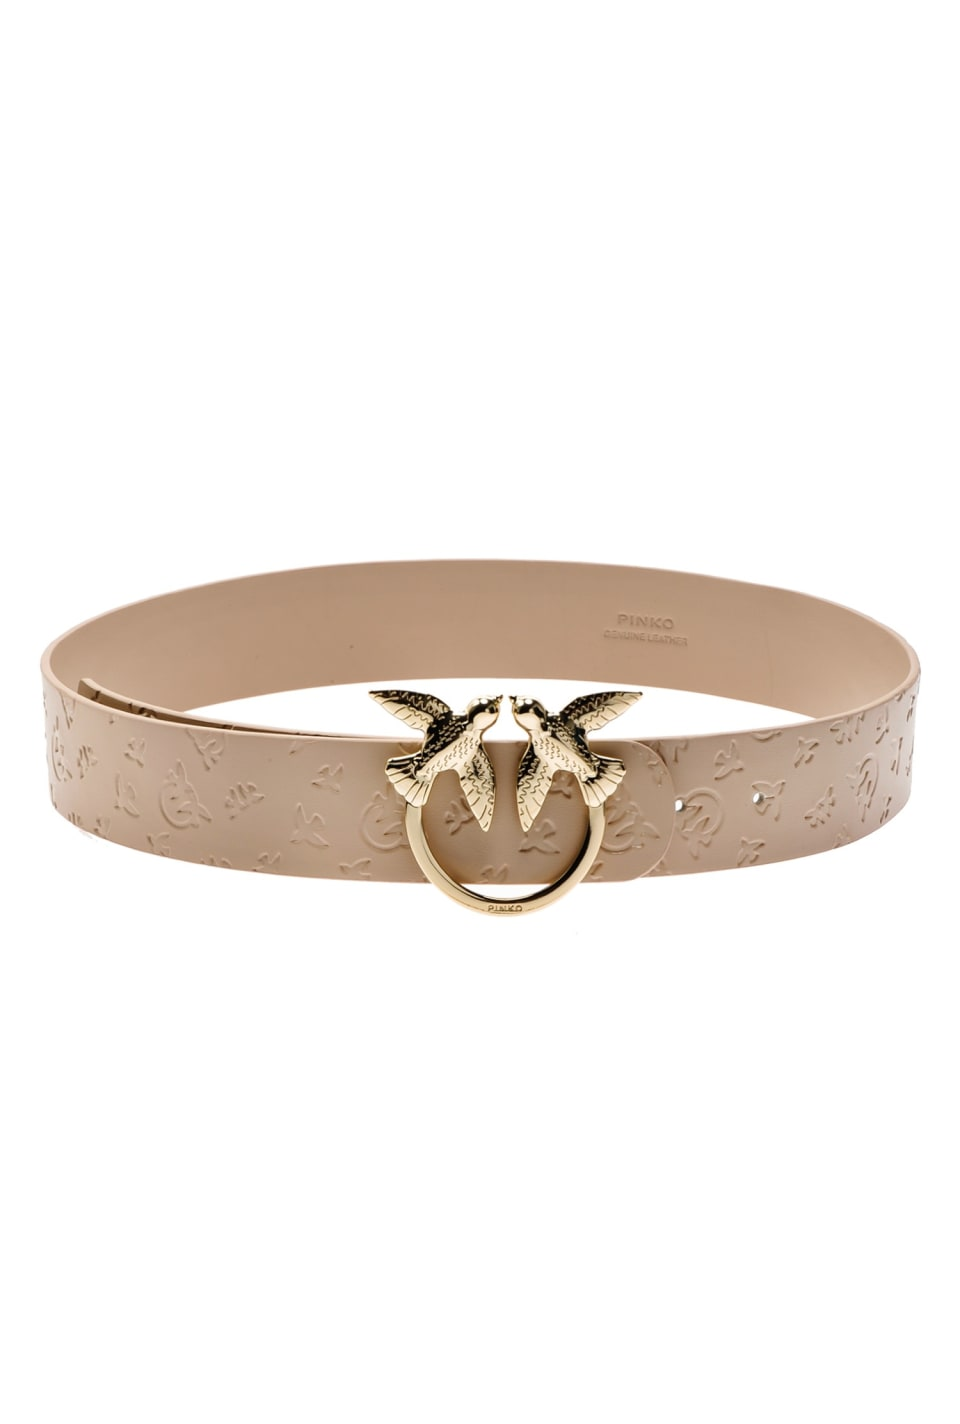 Monogram leather belt with Love Birds buckle